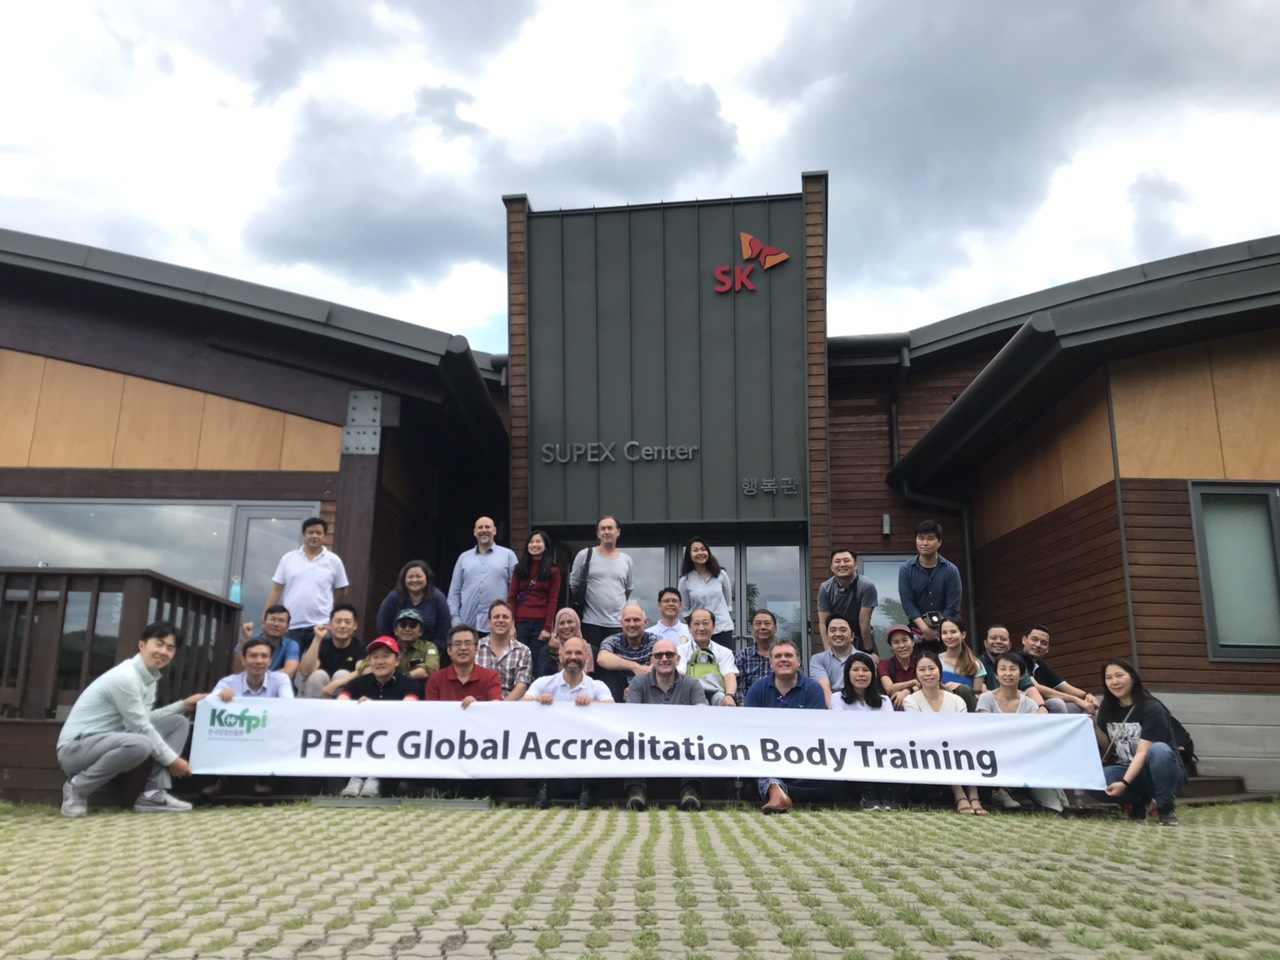 MFCC Participation in PEFC Accreditation Body training